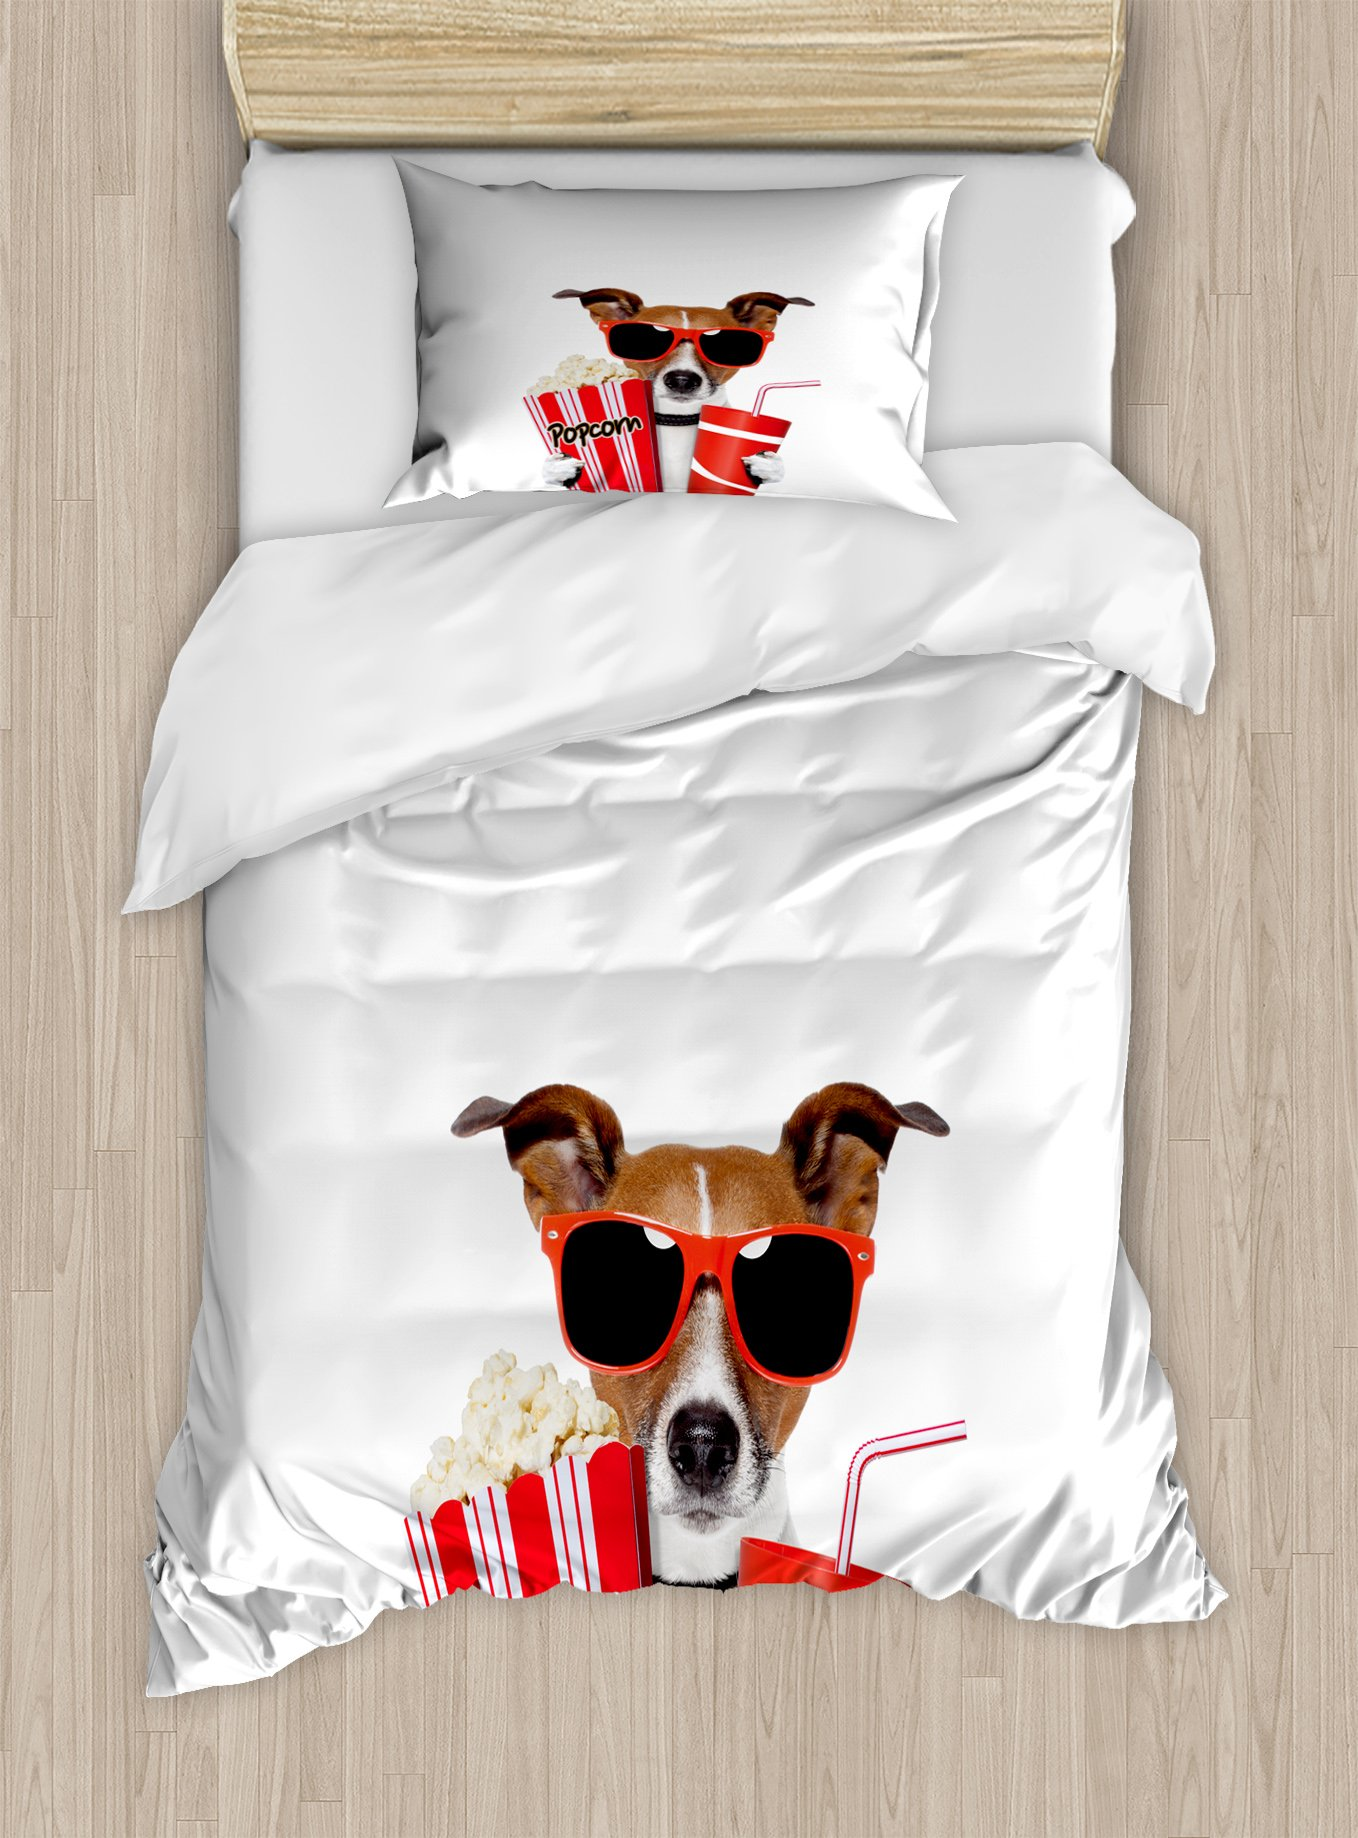 Ambesonne Movie Theater Twin Size Duvet Cover Set, Funny Dog Wearing Sunglasses Watching a Movie with Popcorn and Soda Print, Decorative 2 Piece Bedding Set with 1 Pillow Sham, Multicolor